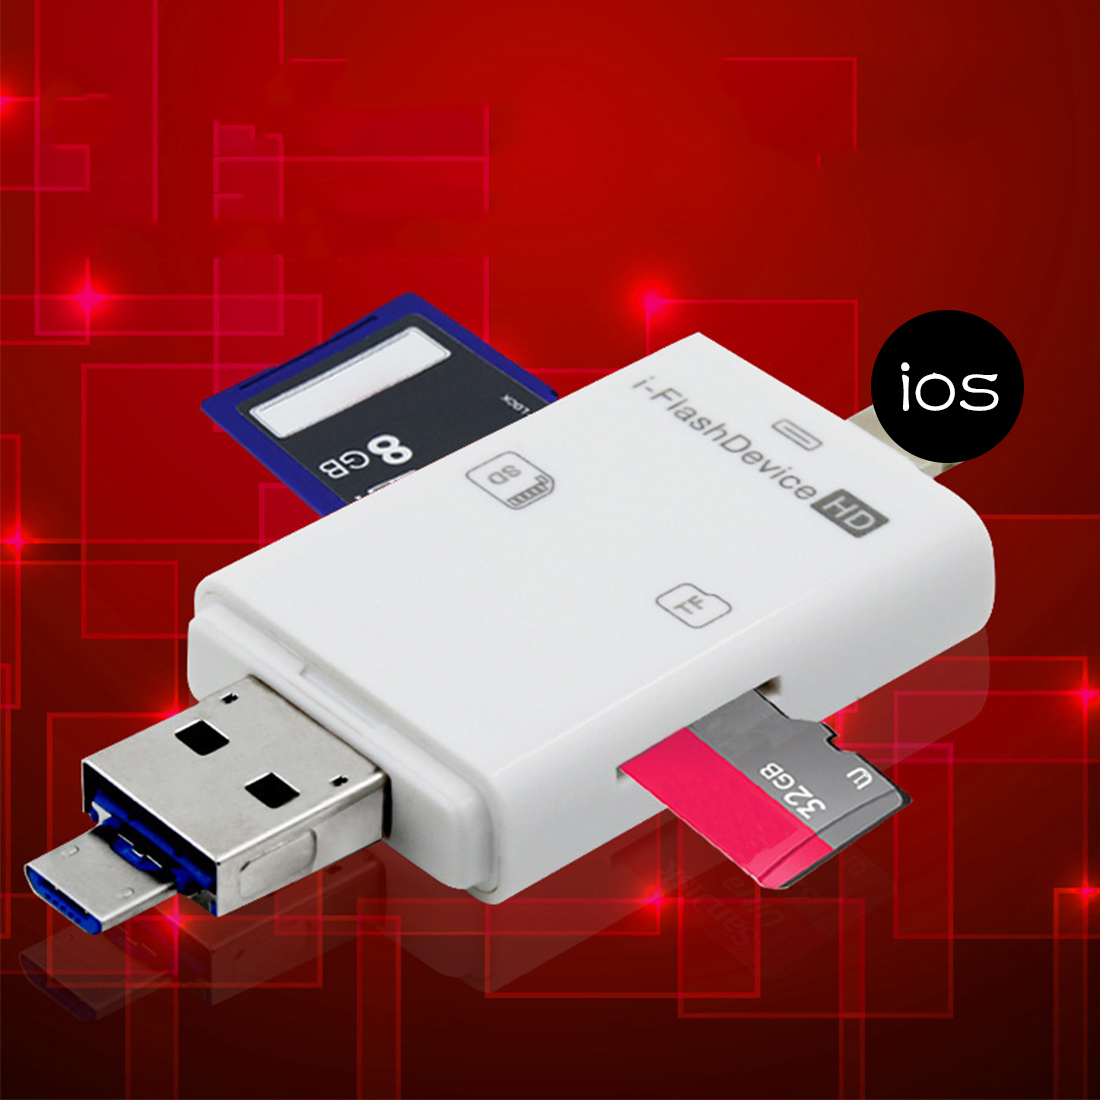 NOYOKERE 3in1 Micro USB Reader Micro SD SDHC TF SD karte Für iPhone 5/5 s/6/6 7 plus/ipad pro air/Samsung/LG/HTC Andrid OTG handys